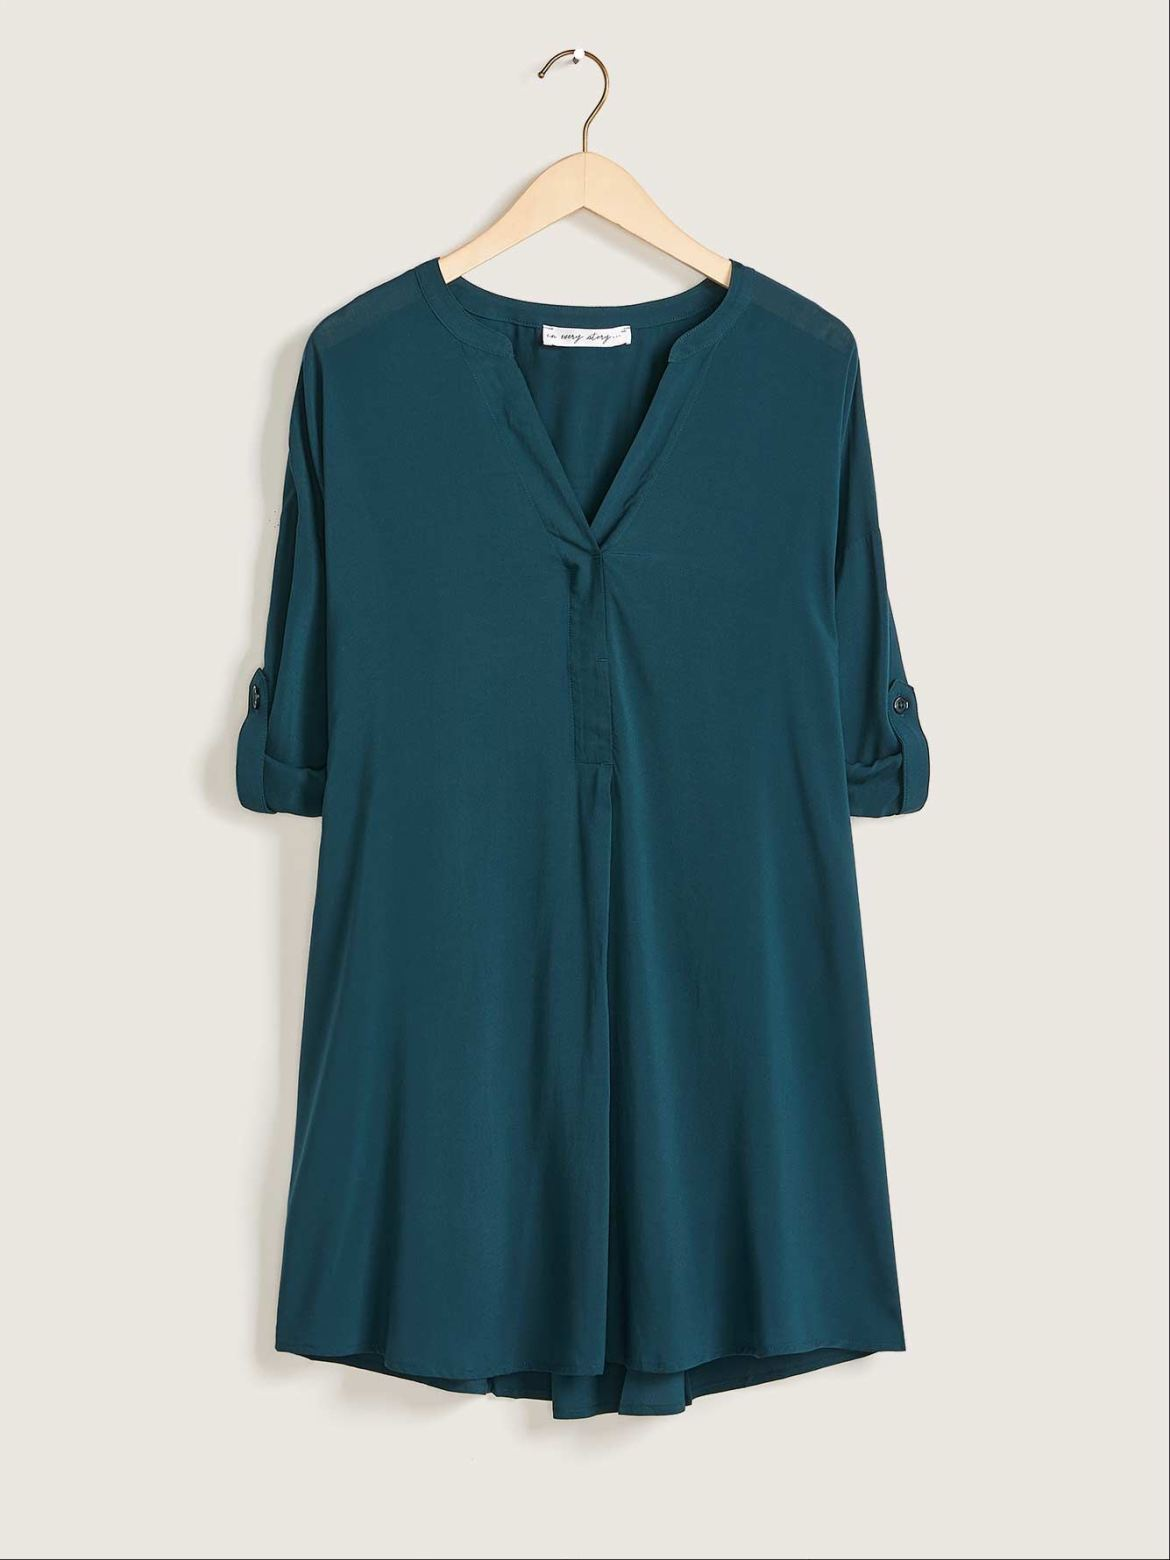 Solid 3/4 Sleeve Tunic Blouse - In Every Story